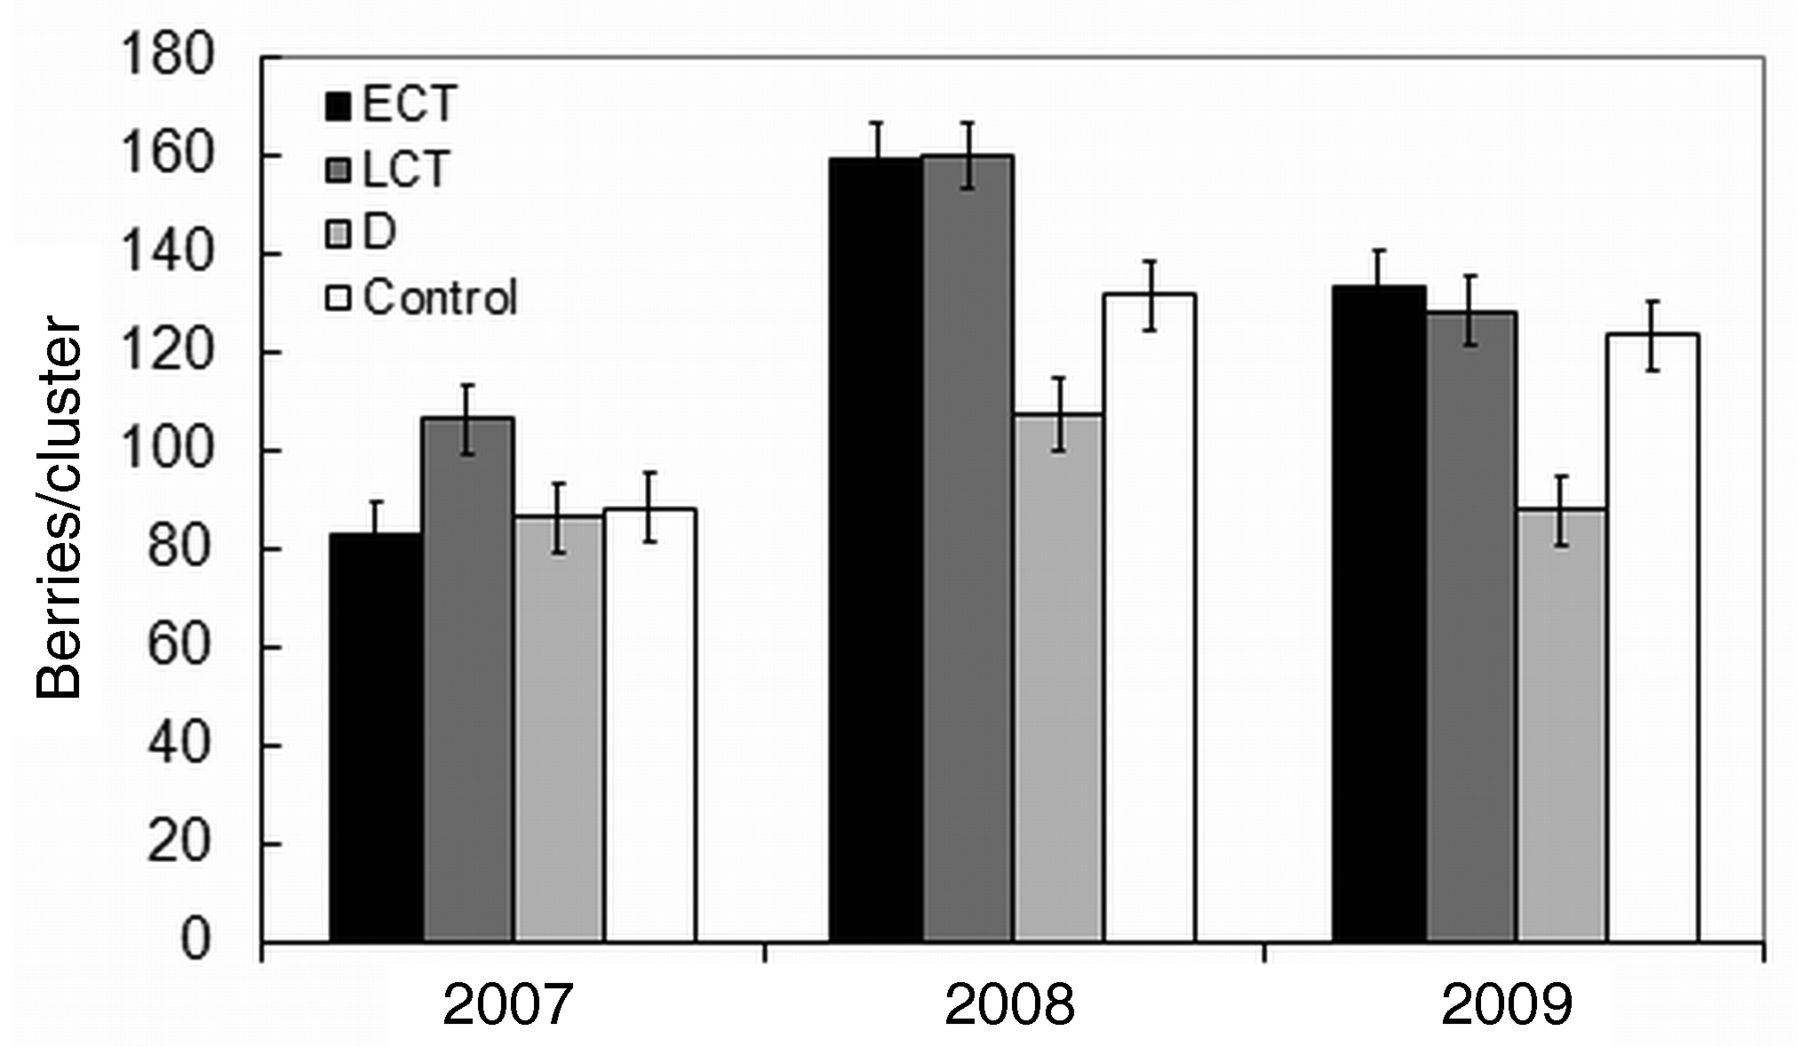 Effects Of Cluster Thinning And Preflowering Leaf Removal On Growth